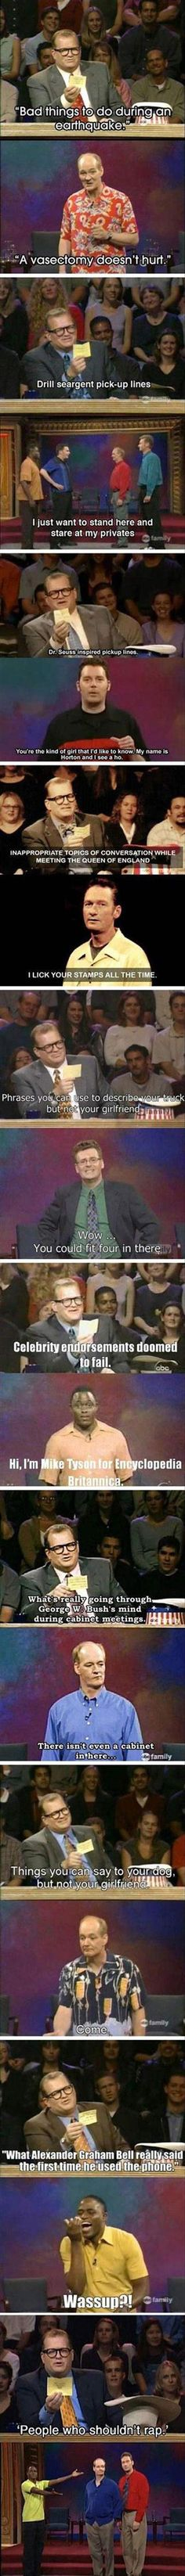 10 Whose Line Is It Anyway Favorites